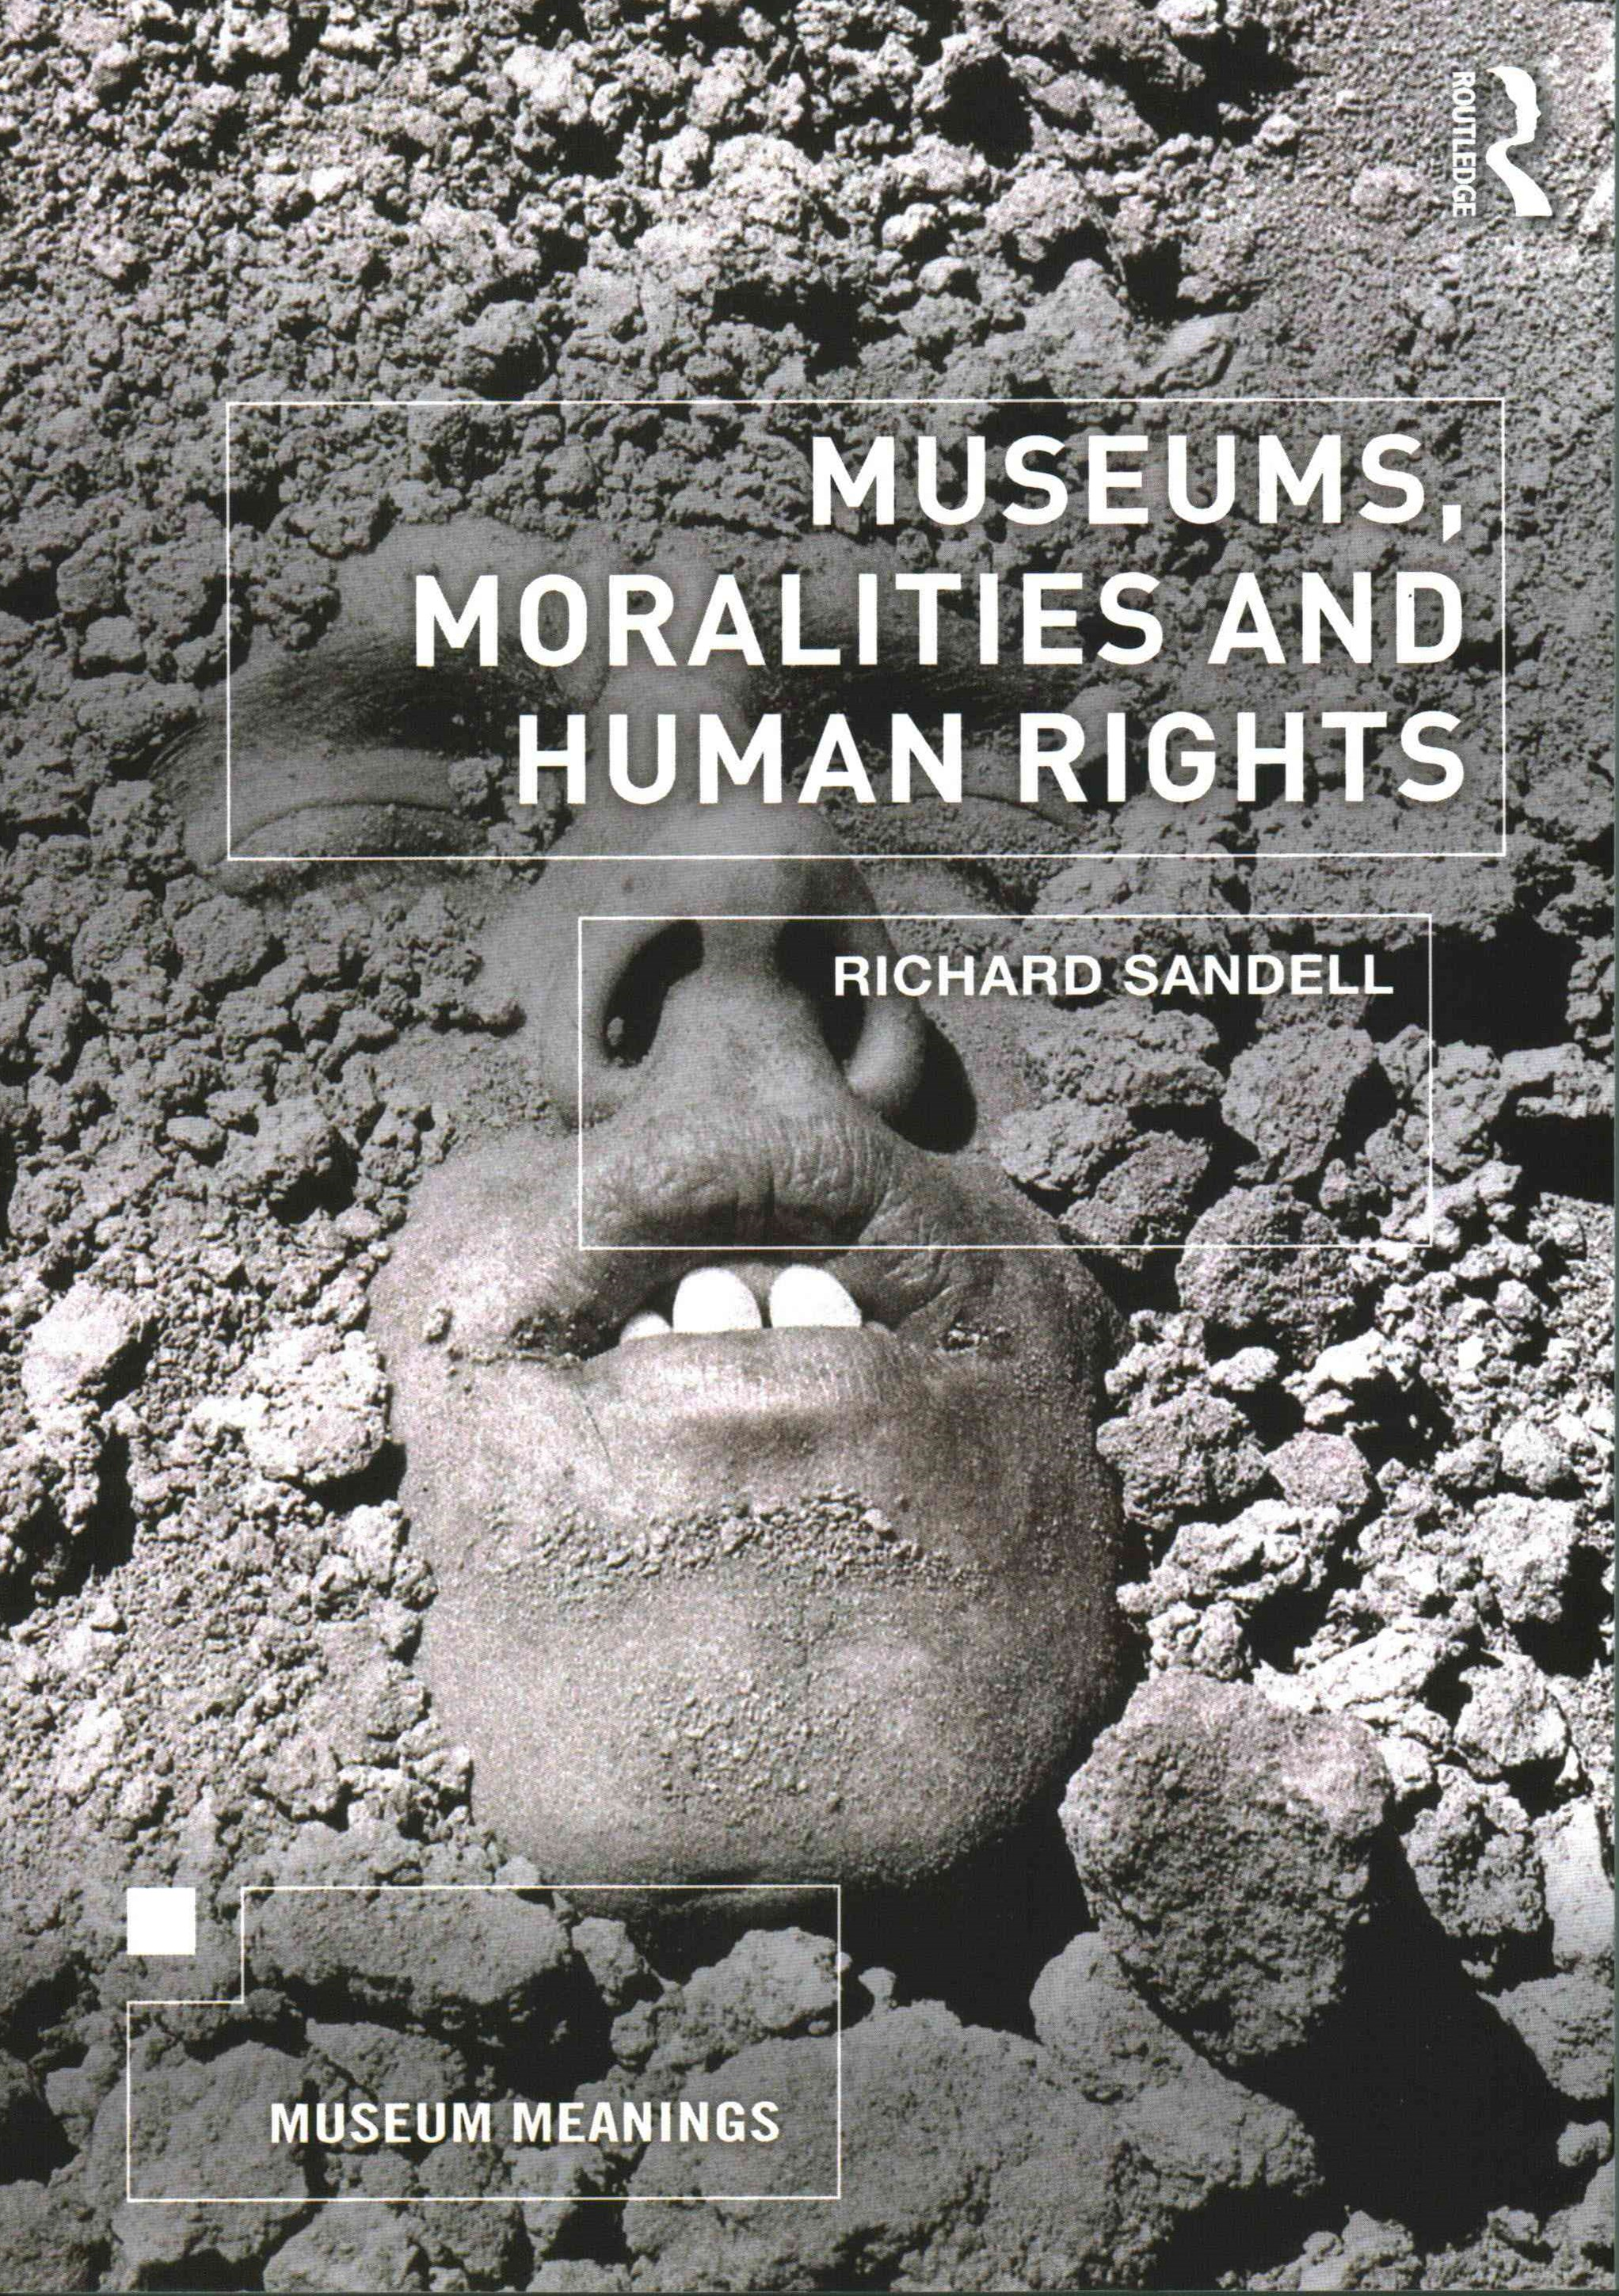 Museums, Moralities and Human Rights